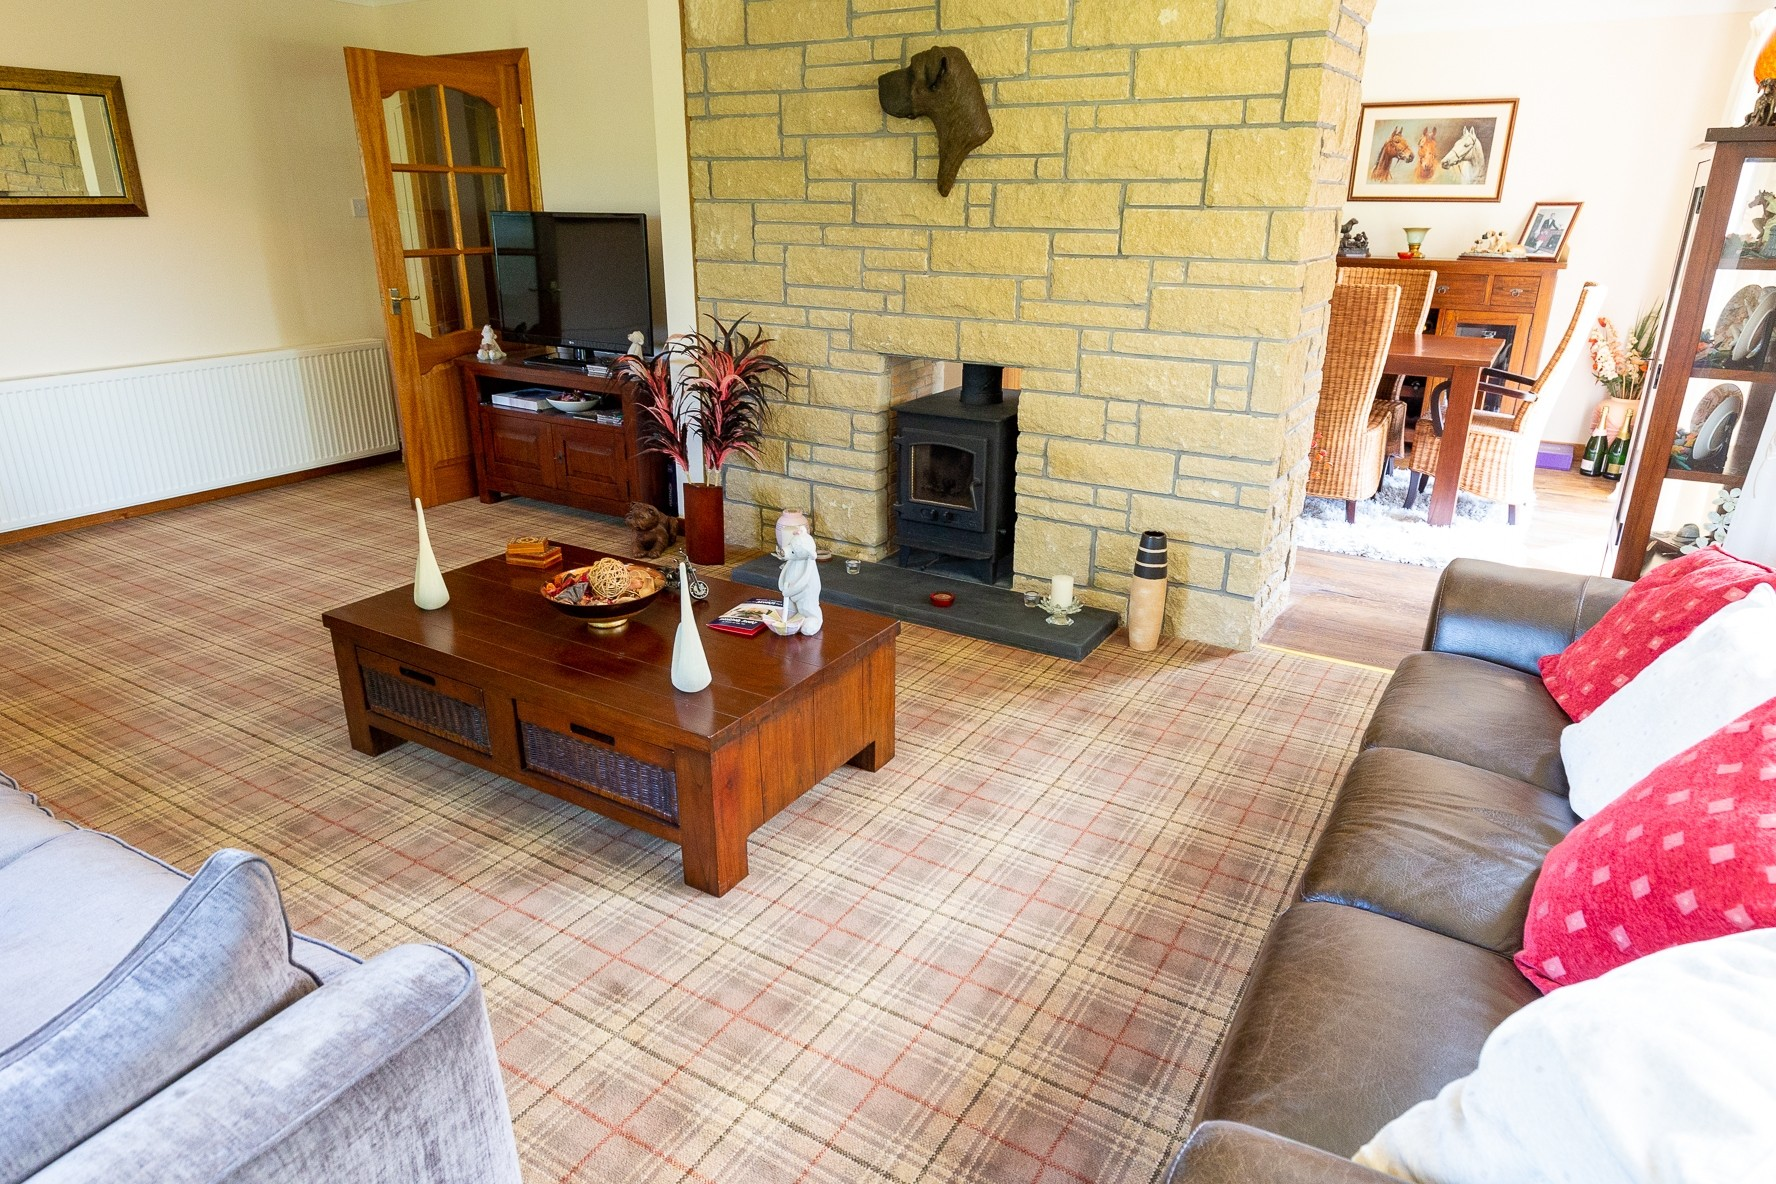 Profitable Boarding Kennels with Superb Family Home in 2.5 acres, Central Scotland - Image 4